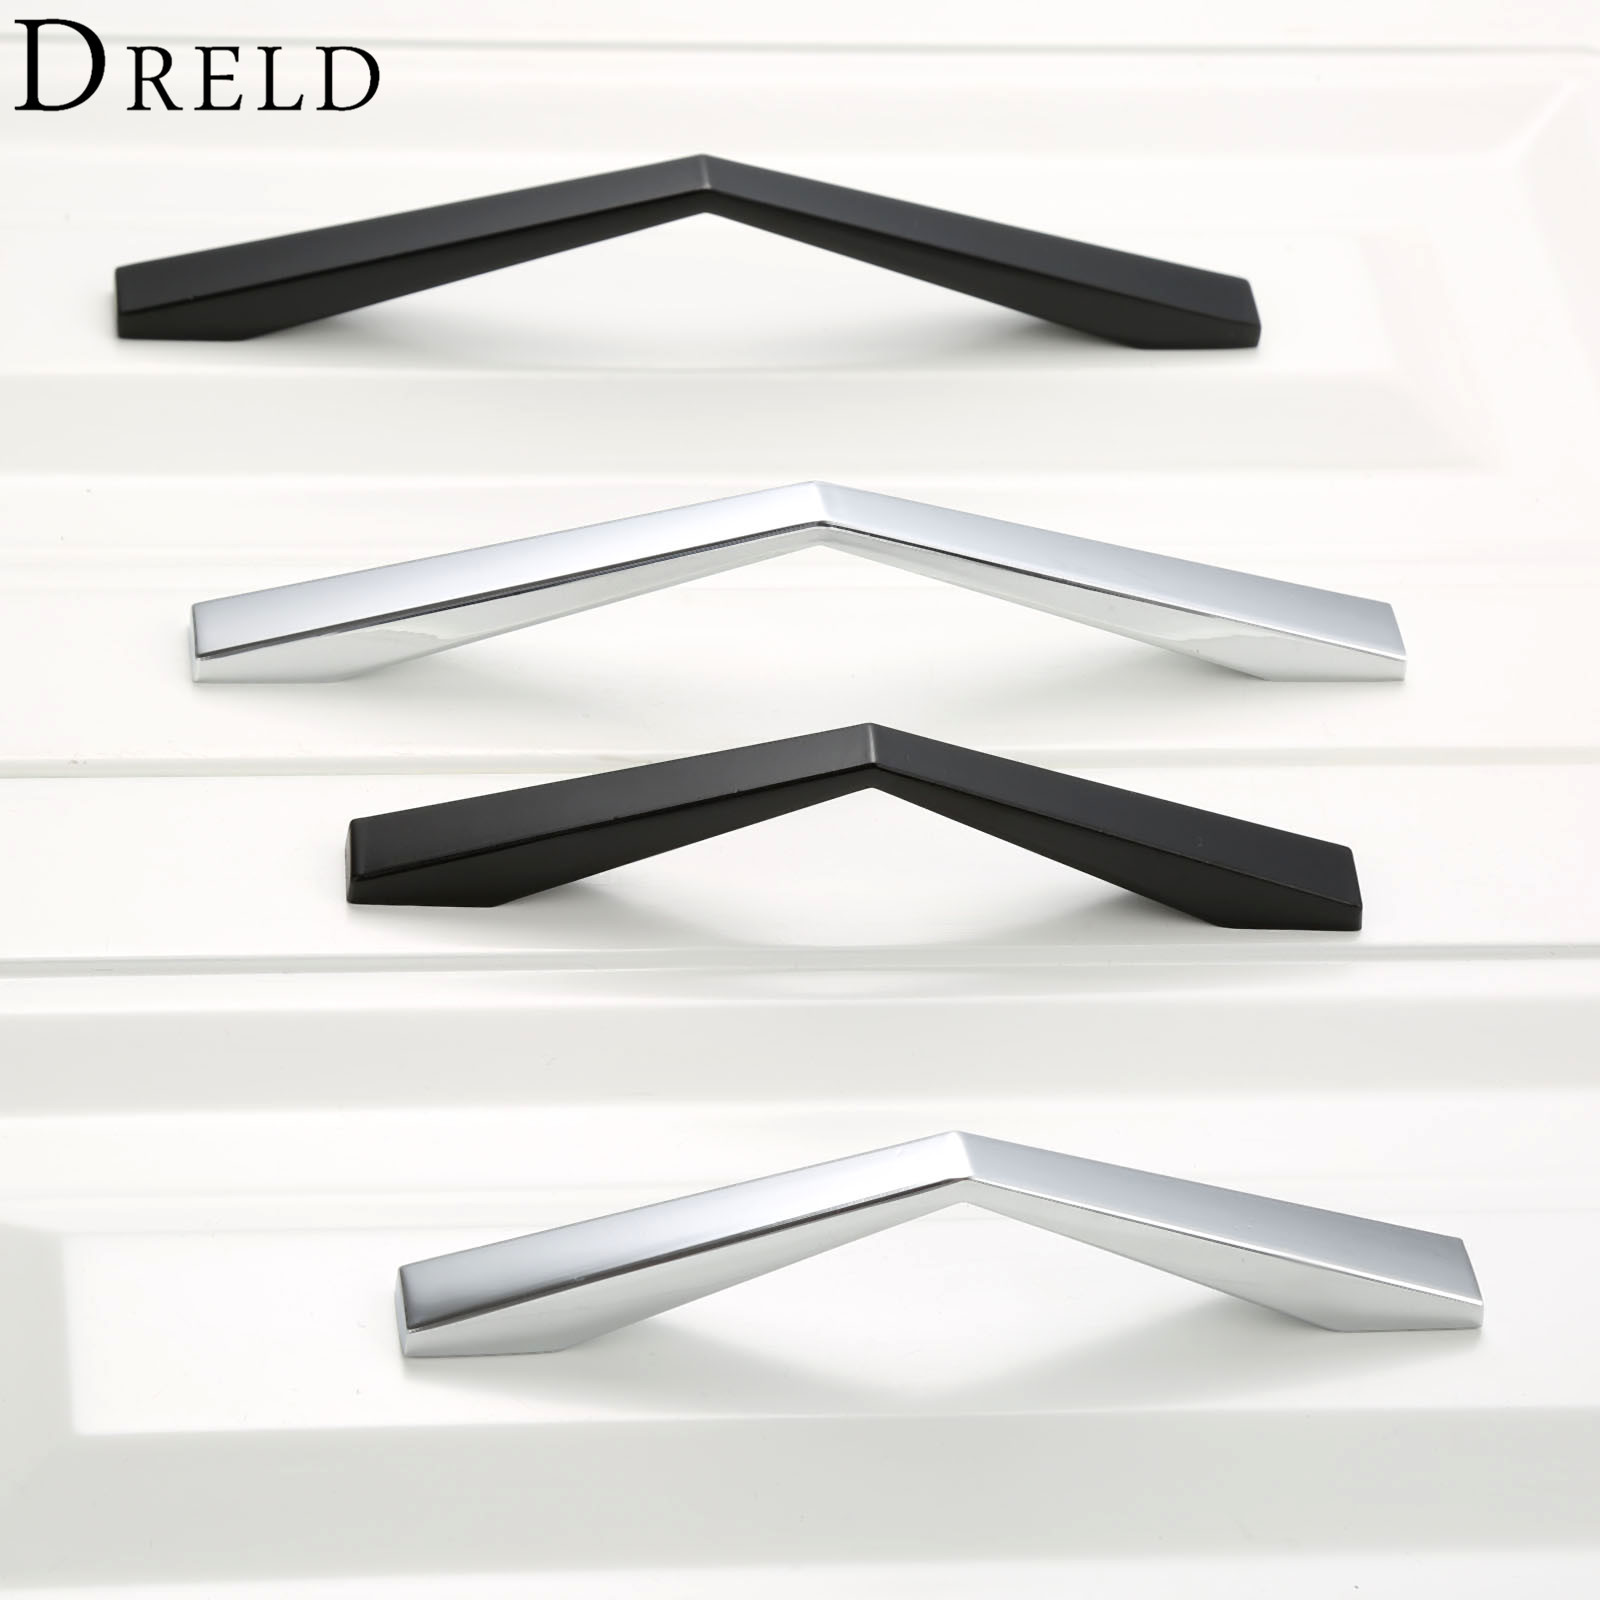 DRELD Furniture Handle Cabinet Knobs and Handles Closet Drawer Door Kitchen Pull Handle Hole Spacing 96/128mm Furniture Hardware 10pcs kitchen cabinet handles and knobs black furniture handle for kitchen cabinet drawer pull single hole 64mm 96mm 128mm